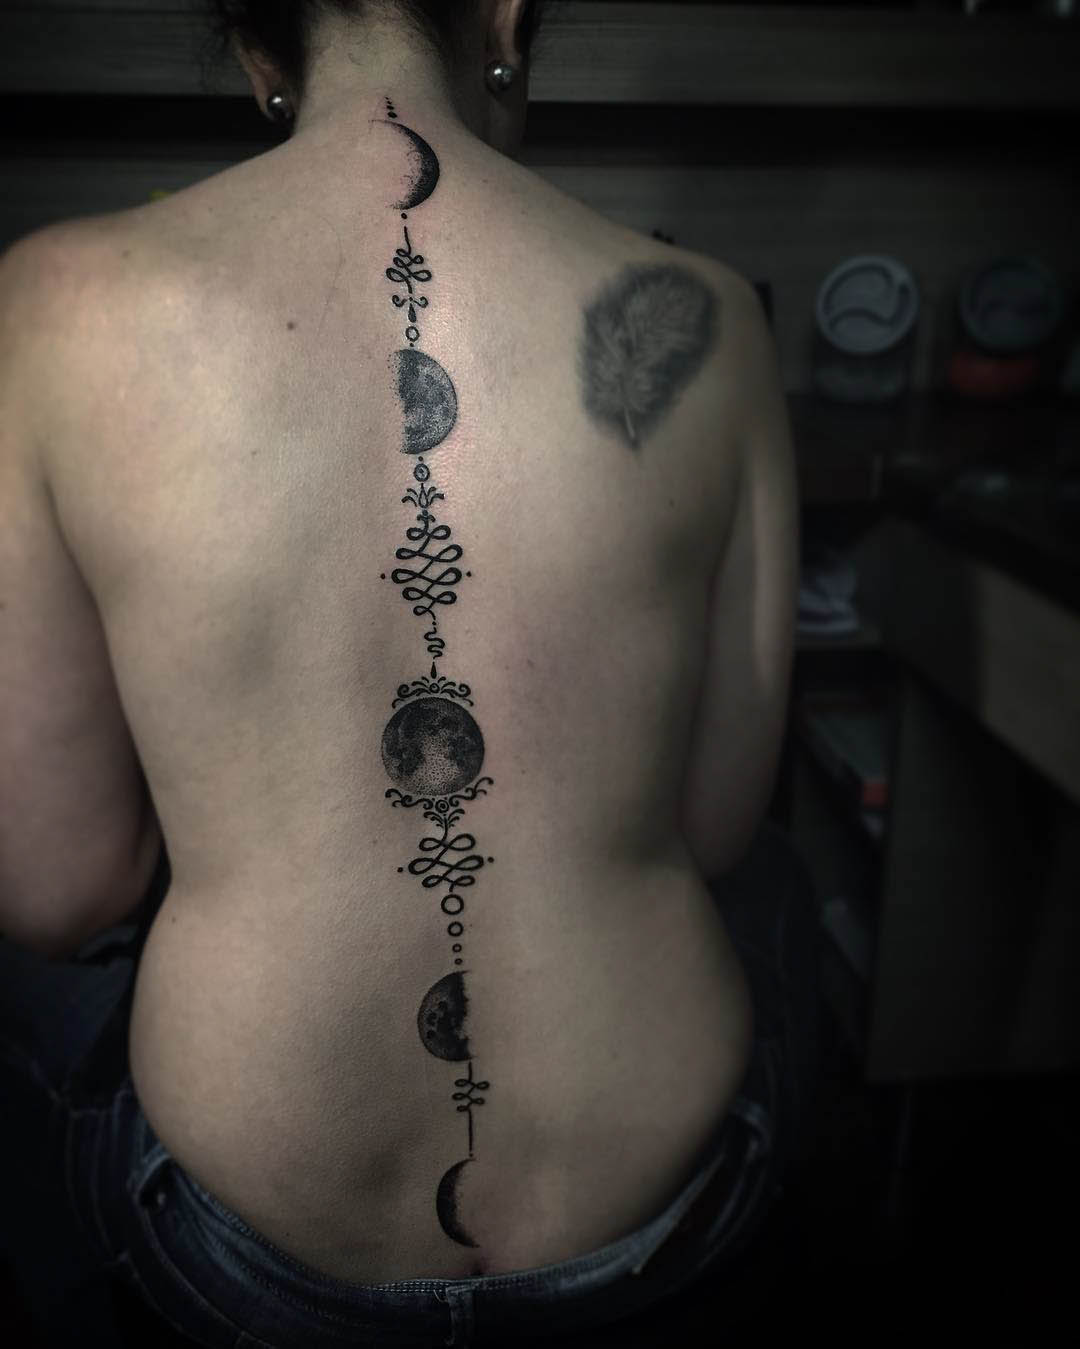 Moon Phases Tattoo on Spine by danistattoo